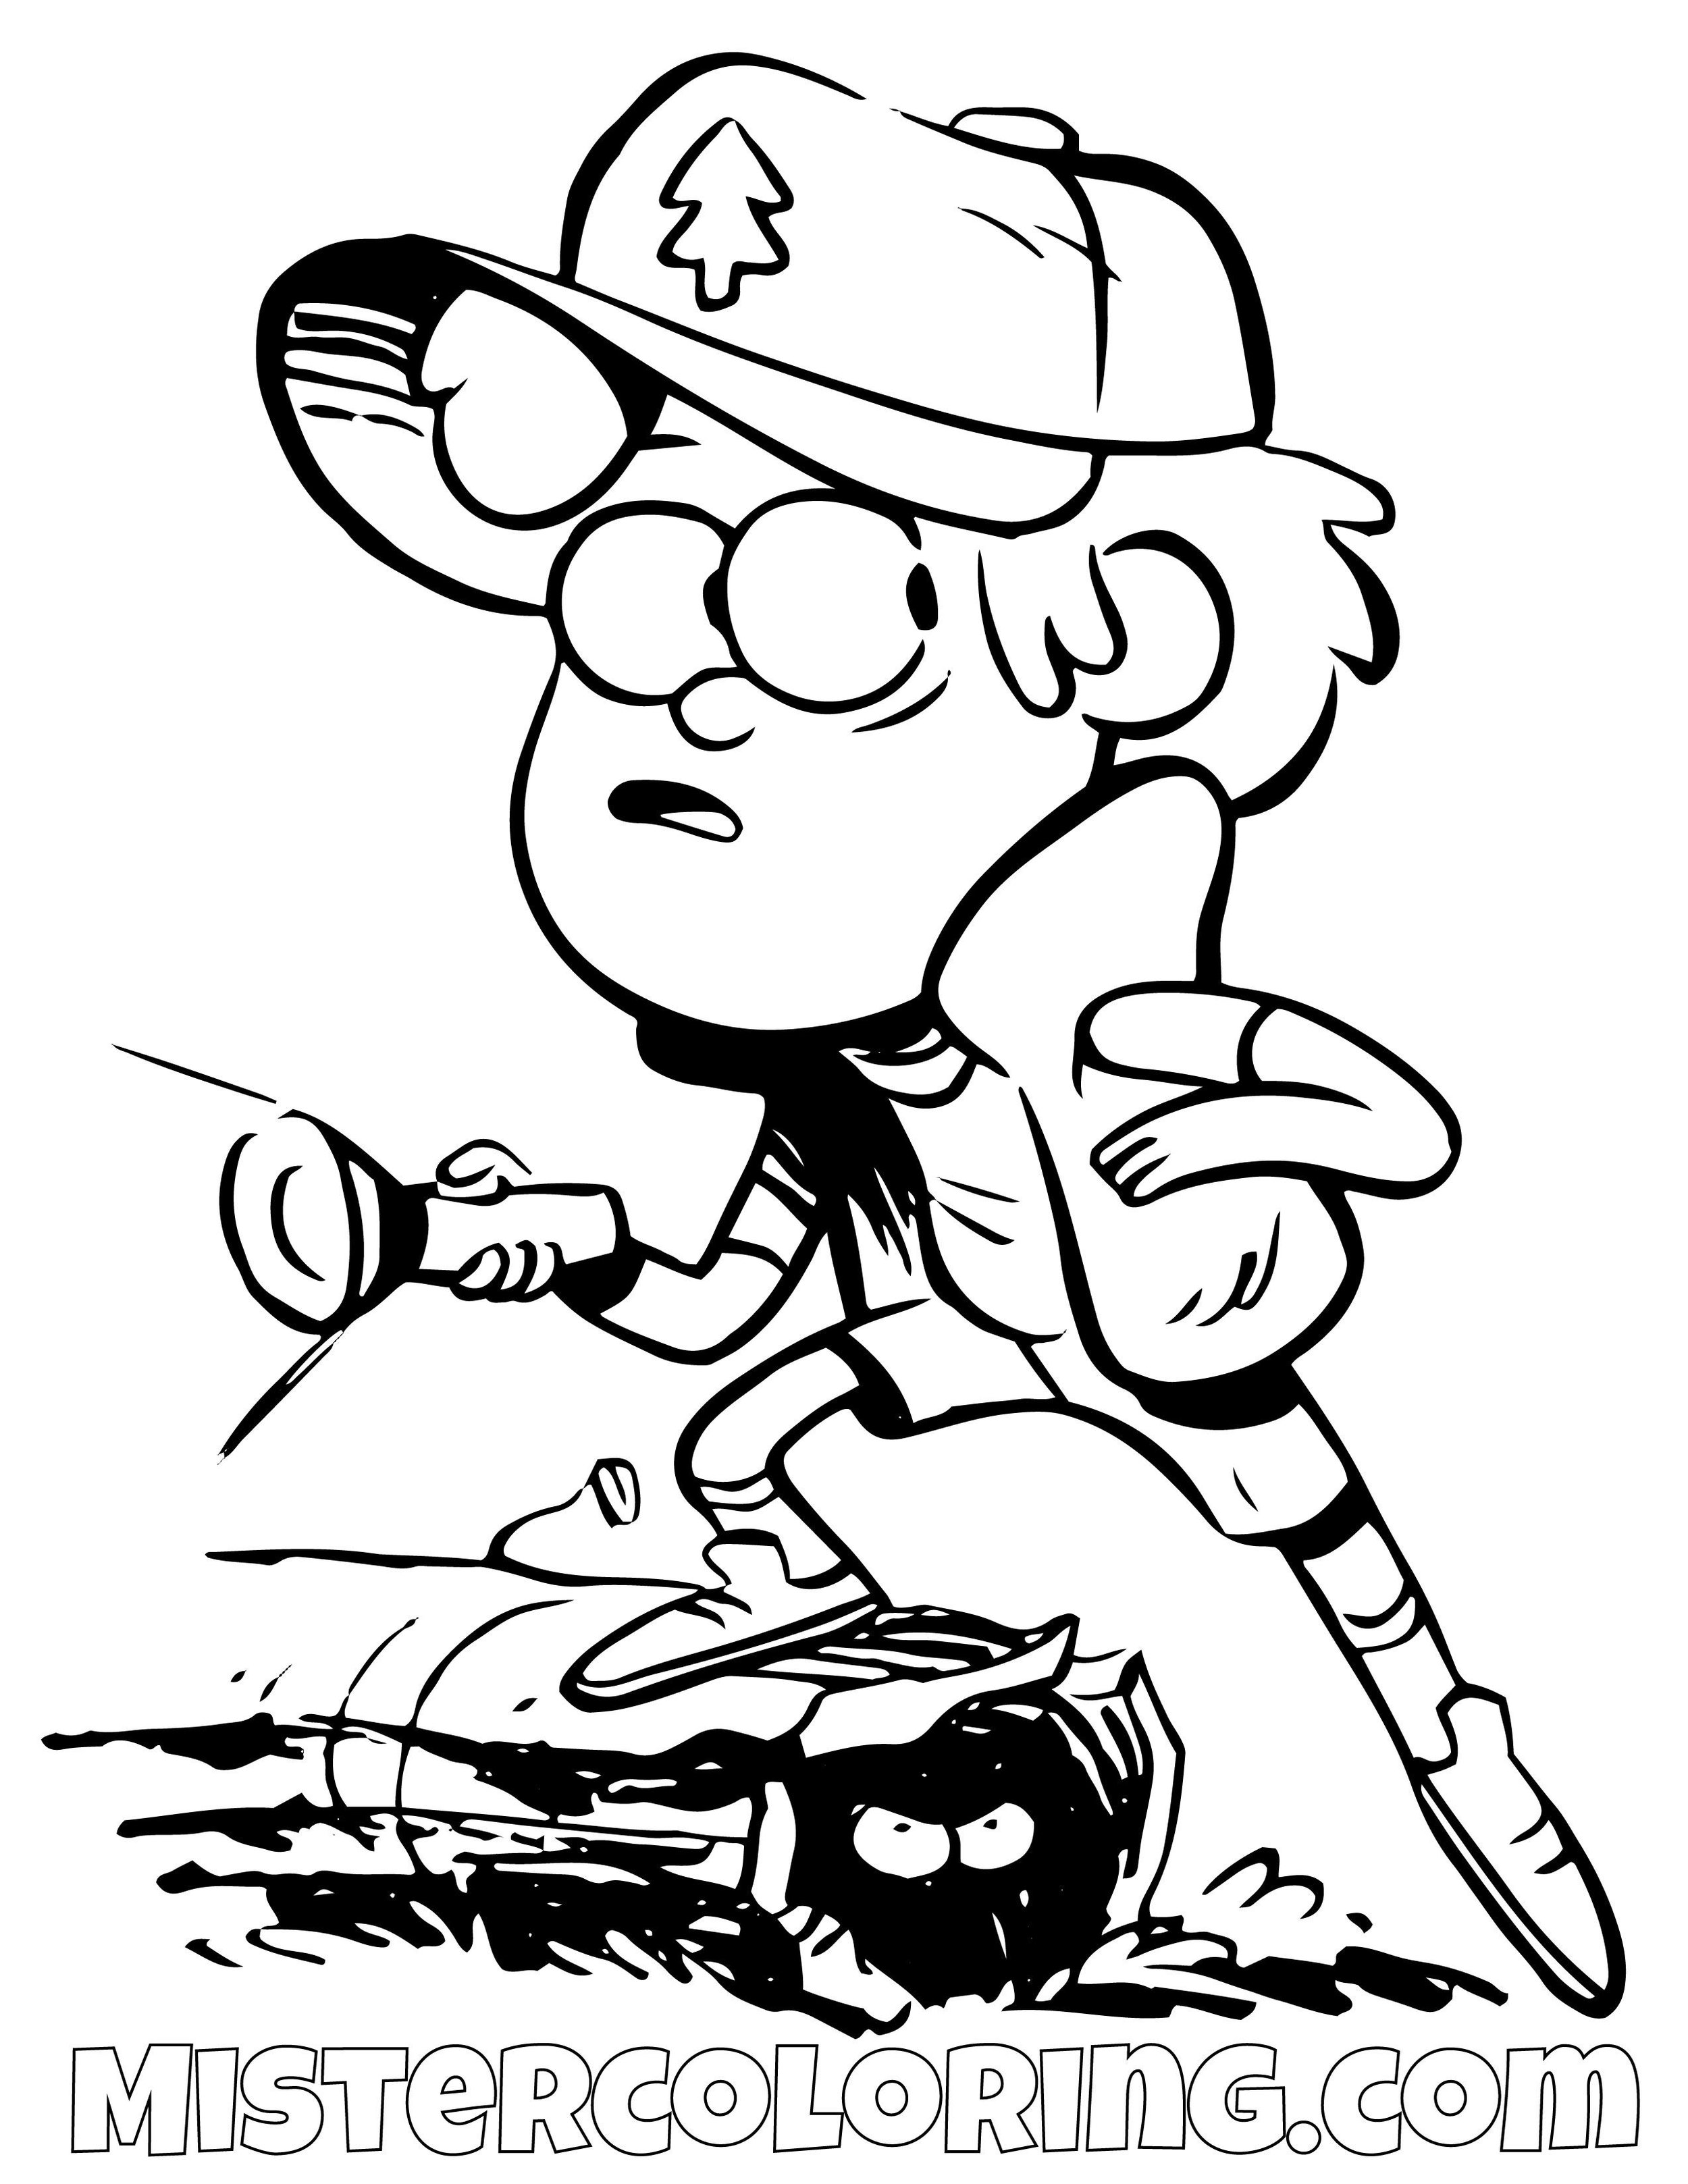 Dipper Pines Exploring Gravity Falls Coloring Pages